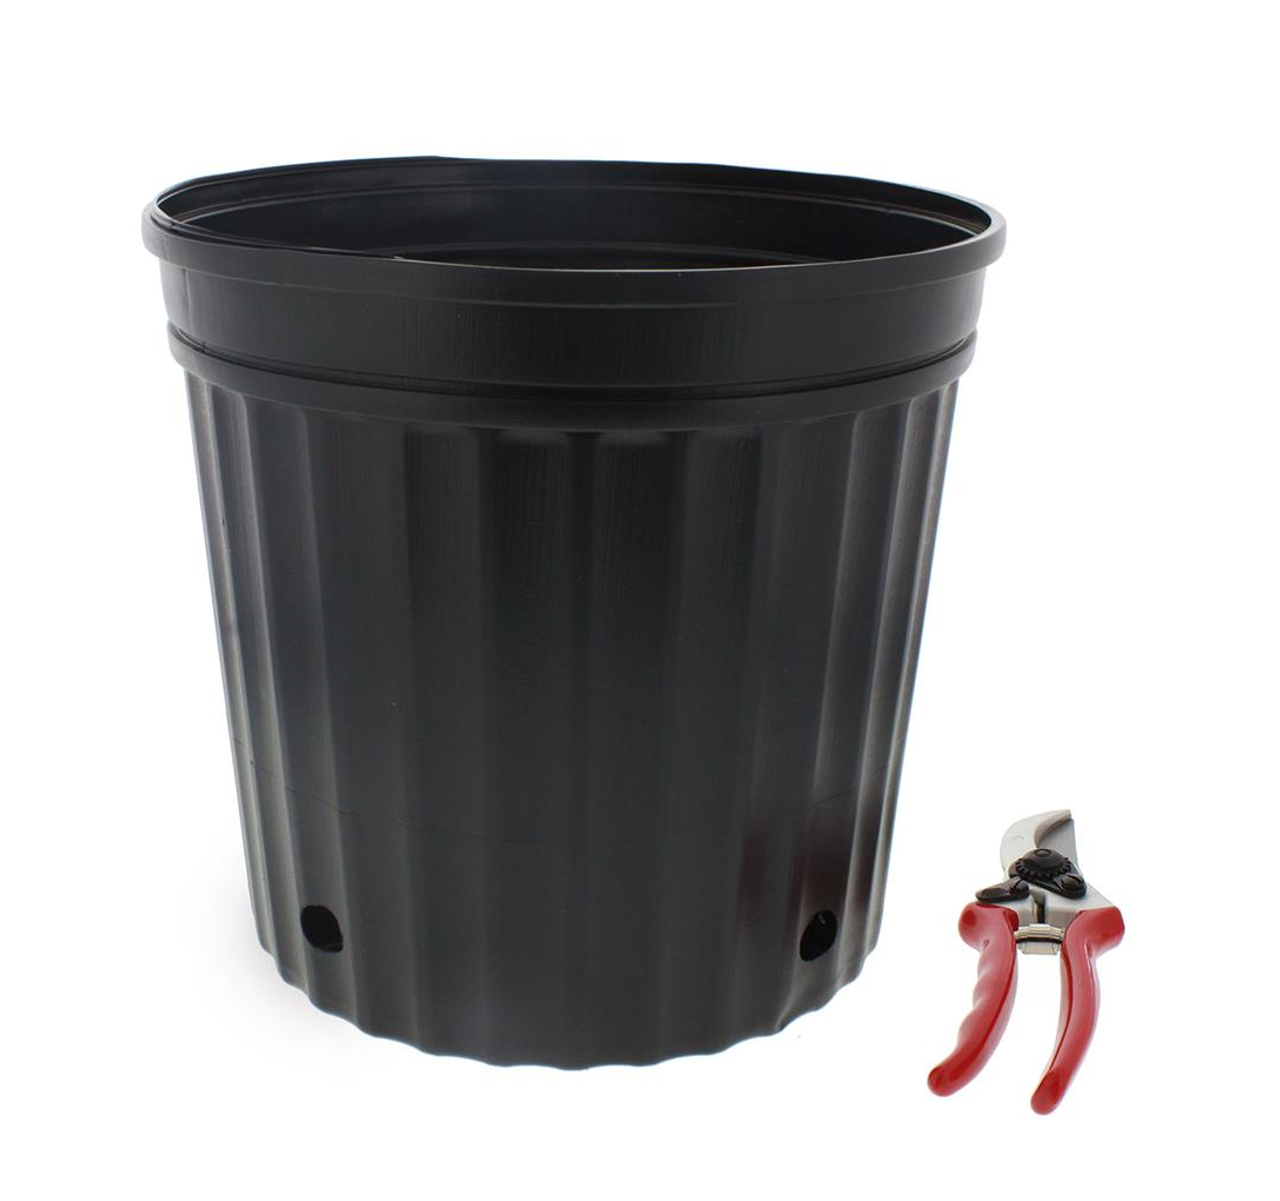 These blow-molded nursery containers are ideal for small shrubs, perennials and tropicals at an amazingly low price.